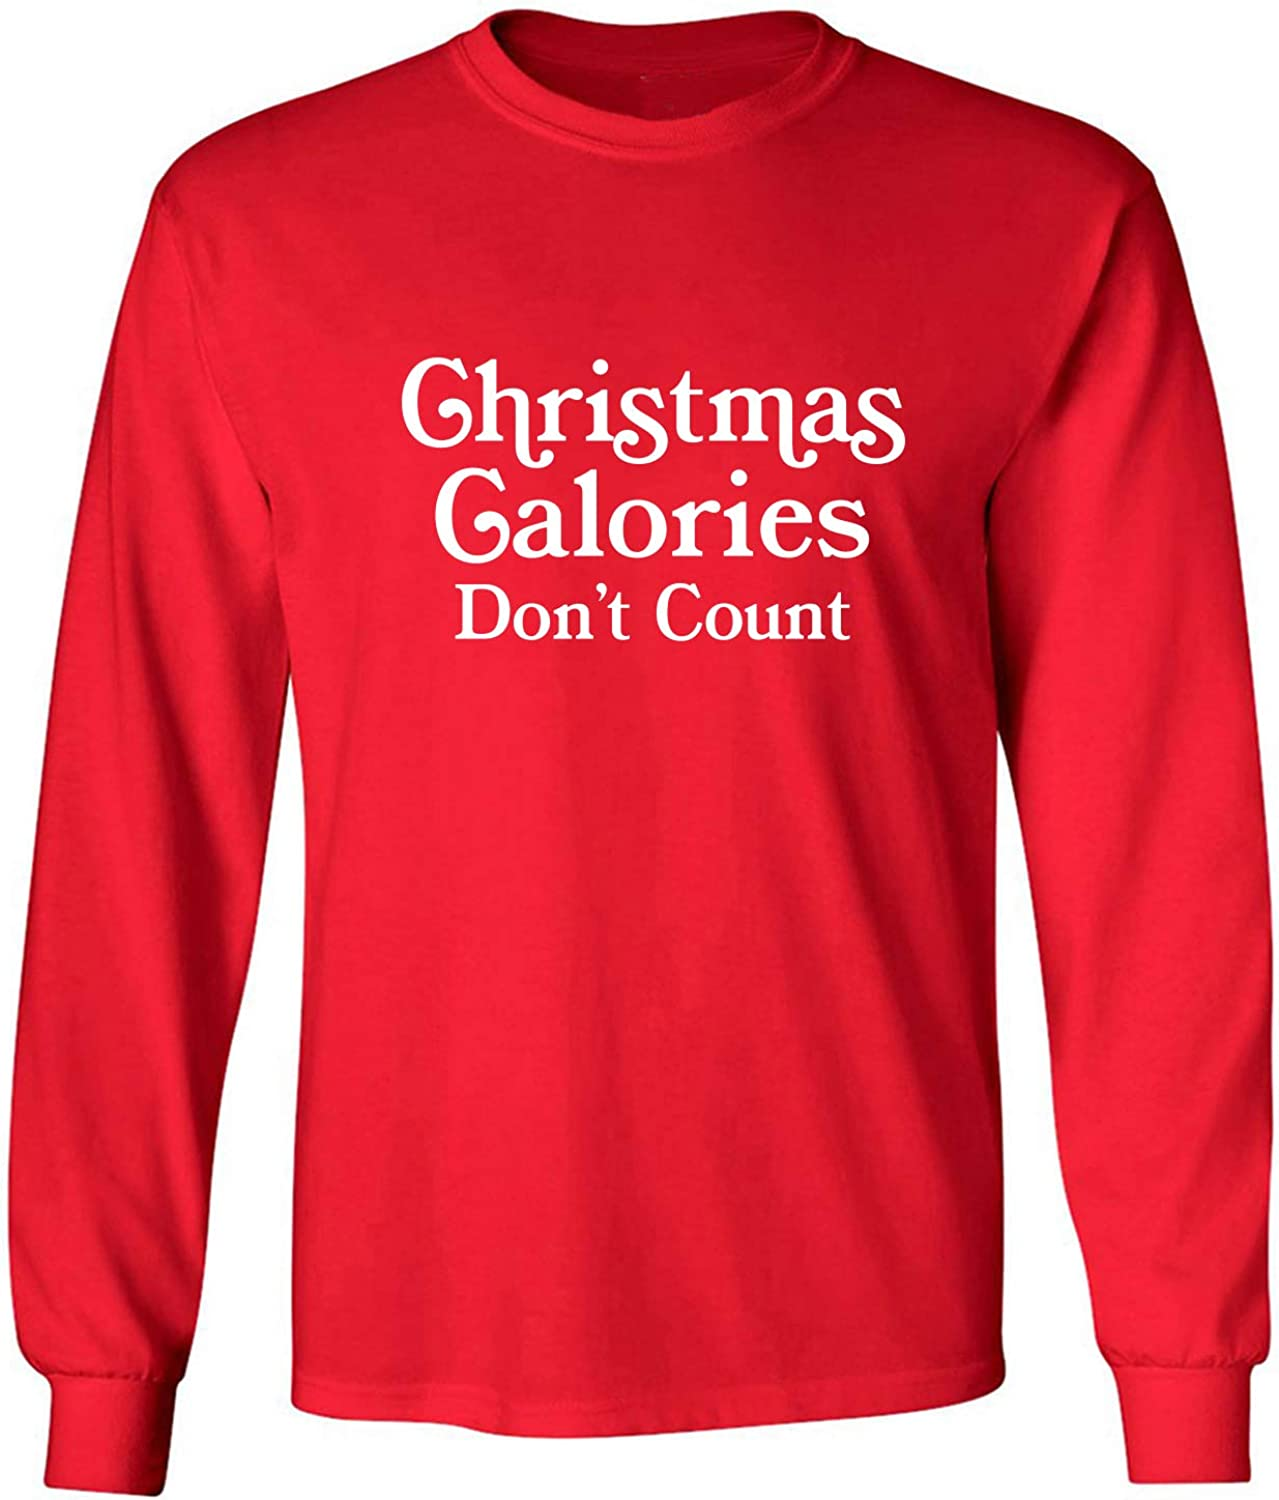 Christmas Calories Don't Count Adult Long Sleeve T-Shirt in Red - XXX-Large